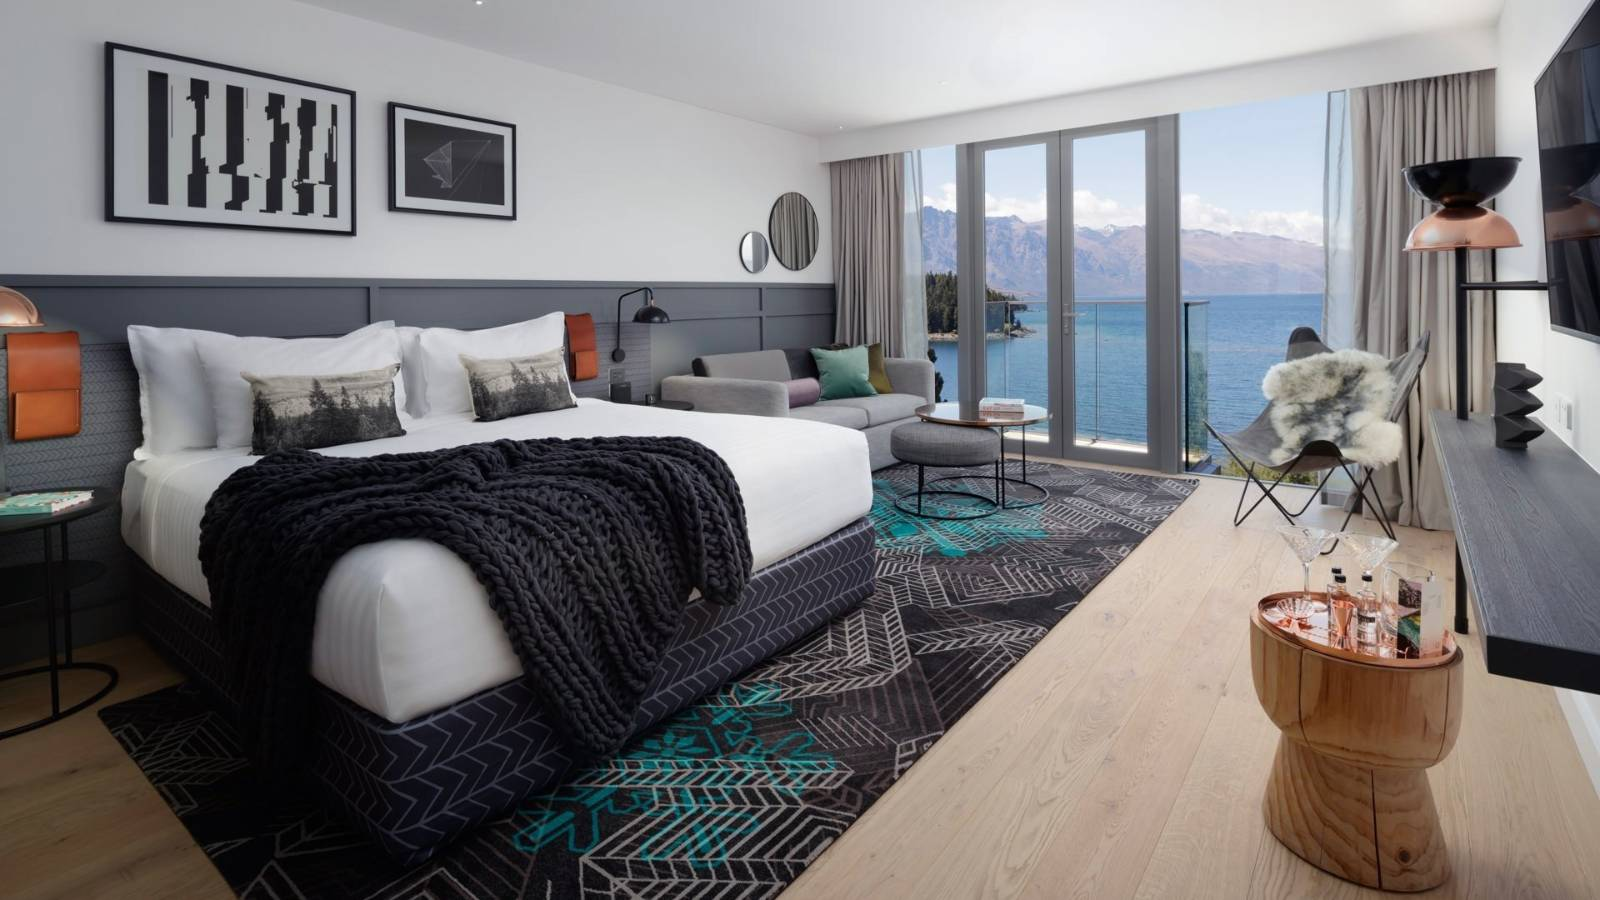 QT Queenstown: Boutique luxury hotel is quirky and modern